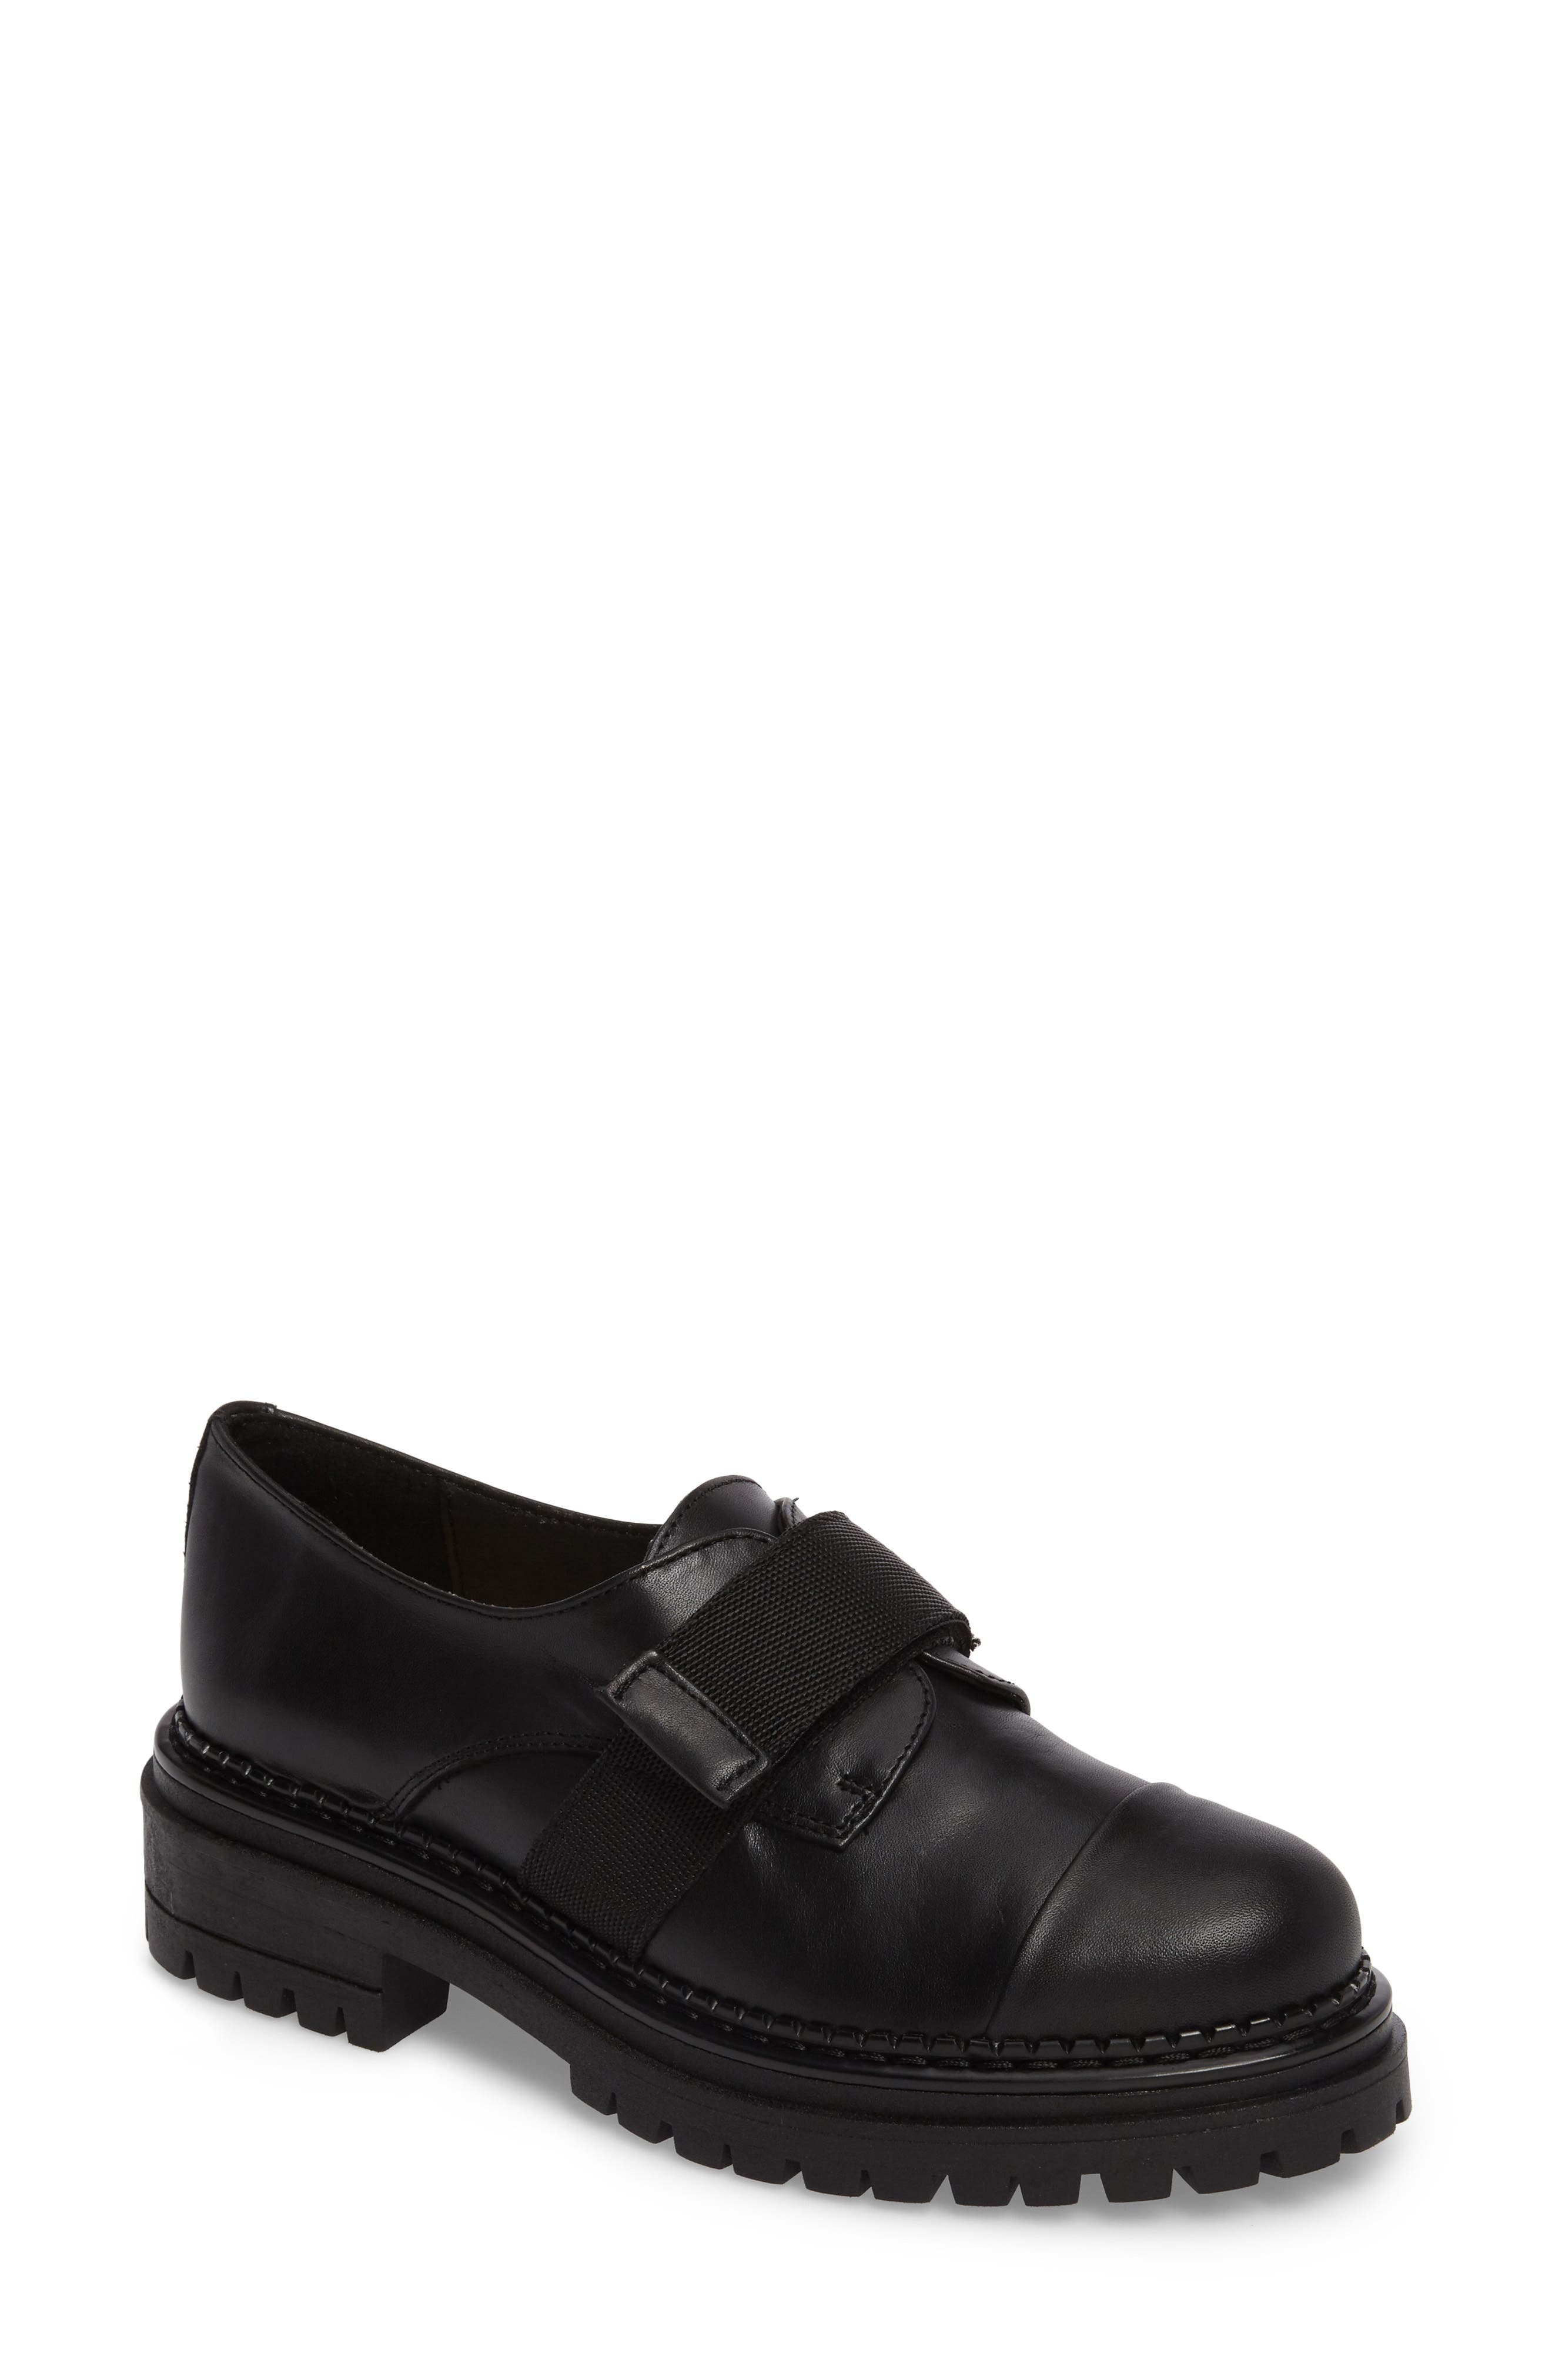 Shellys London Keeper Lug Sole Loafer (Women)